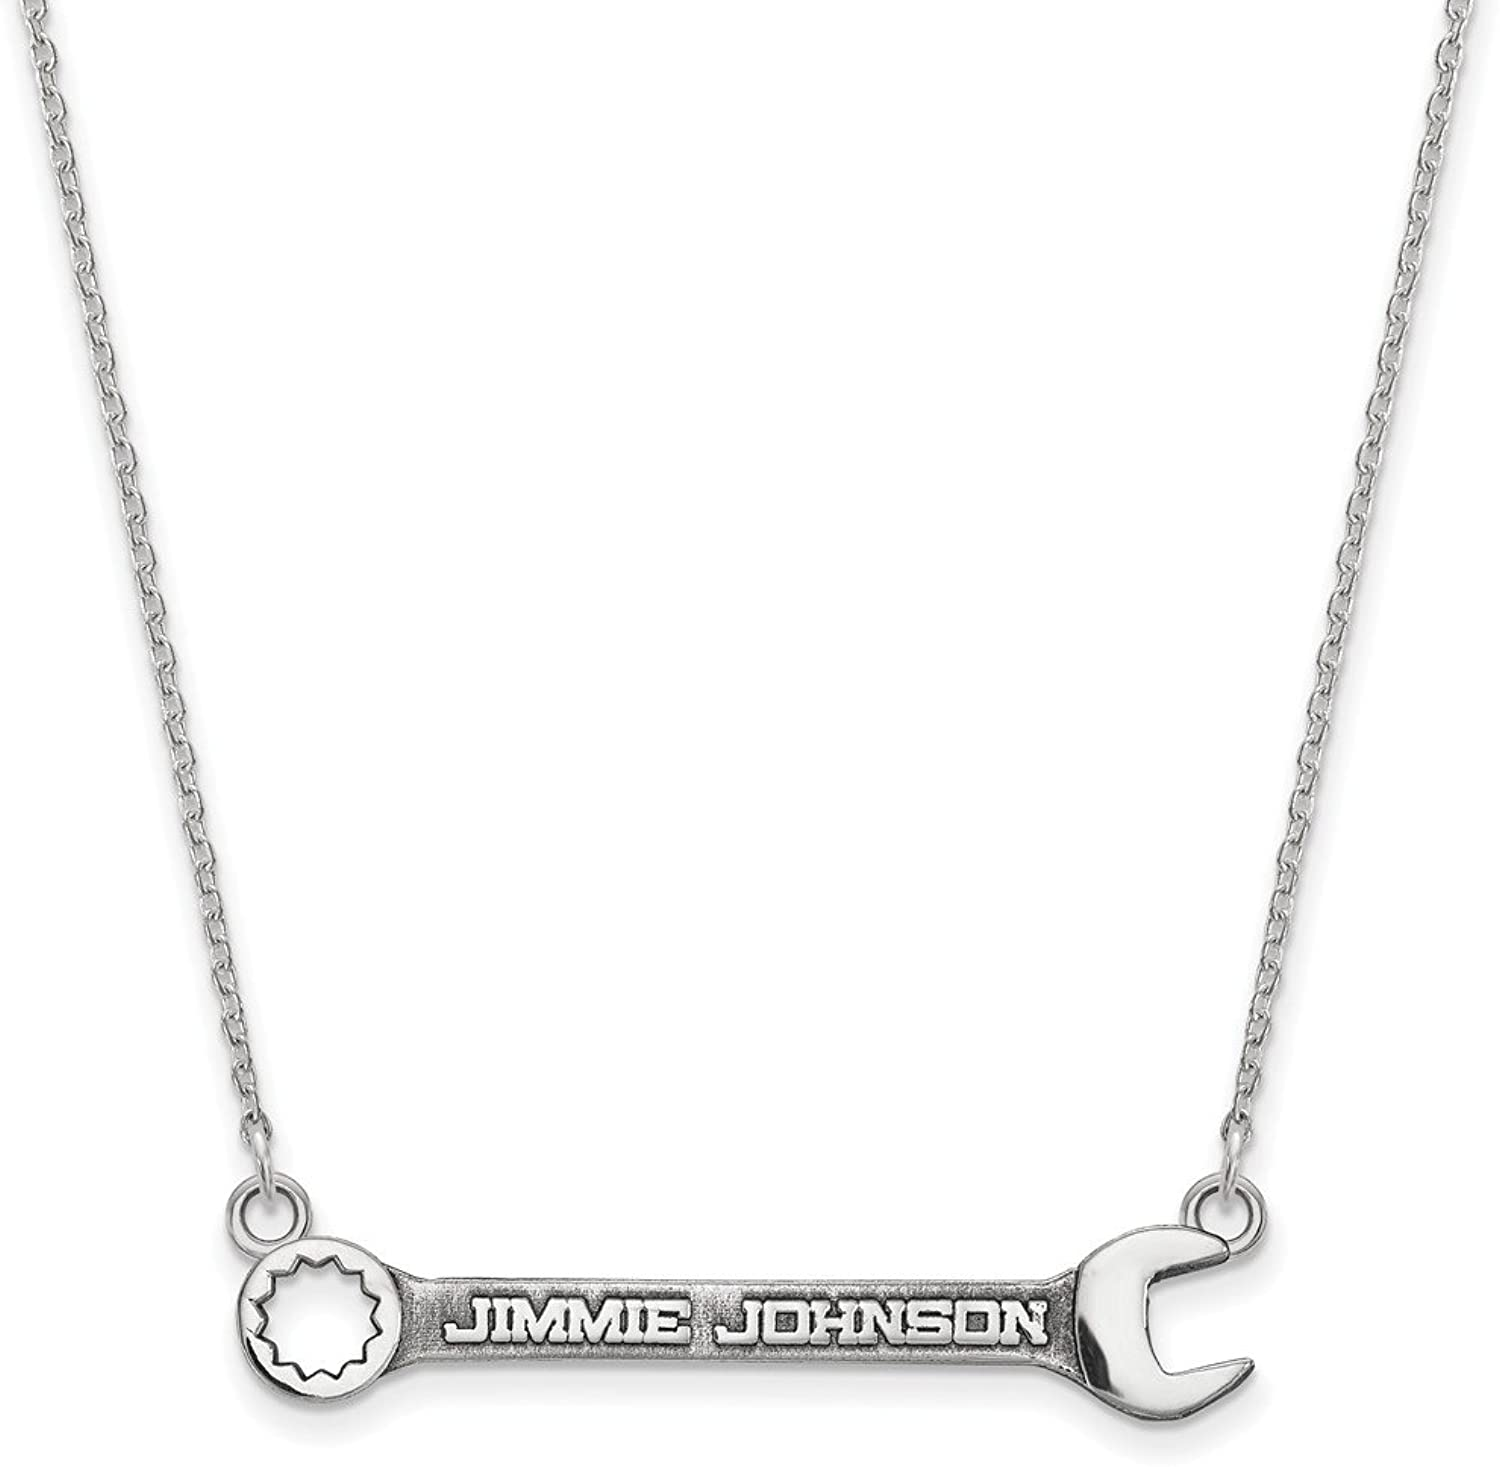 Beautiful Sterling silver 925 sterling Sterling Silver Ant LogoArt NASCAR  48 Jimmie Johnson Wrench Necklace